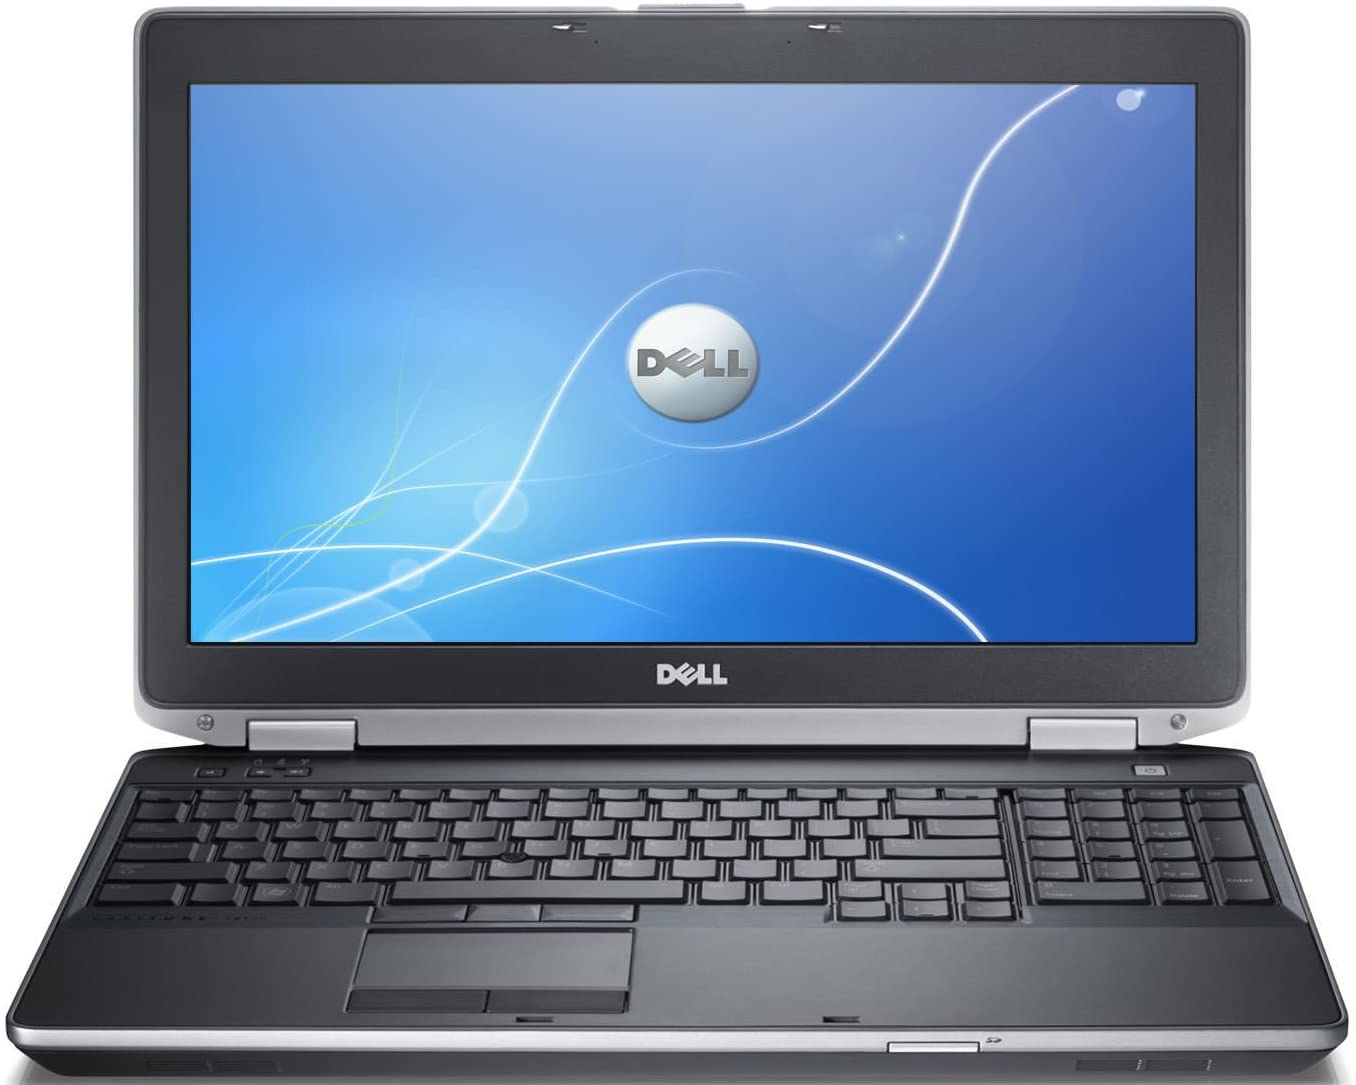 Dell Latitude E6530 15in Notebook PC - Intel Core i5-3210M 2.5GHz 4GB 320GB Windows 10 Professional (Renewed)